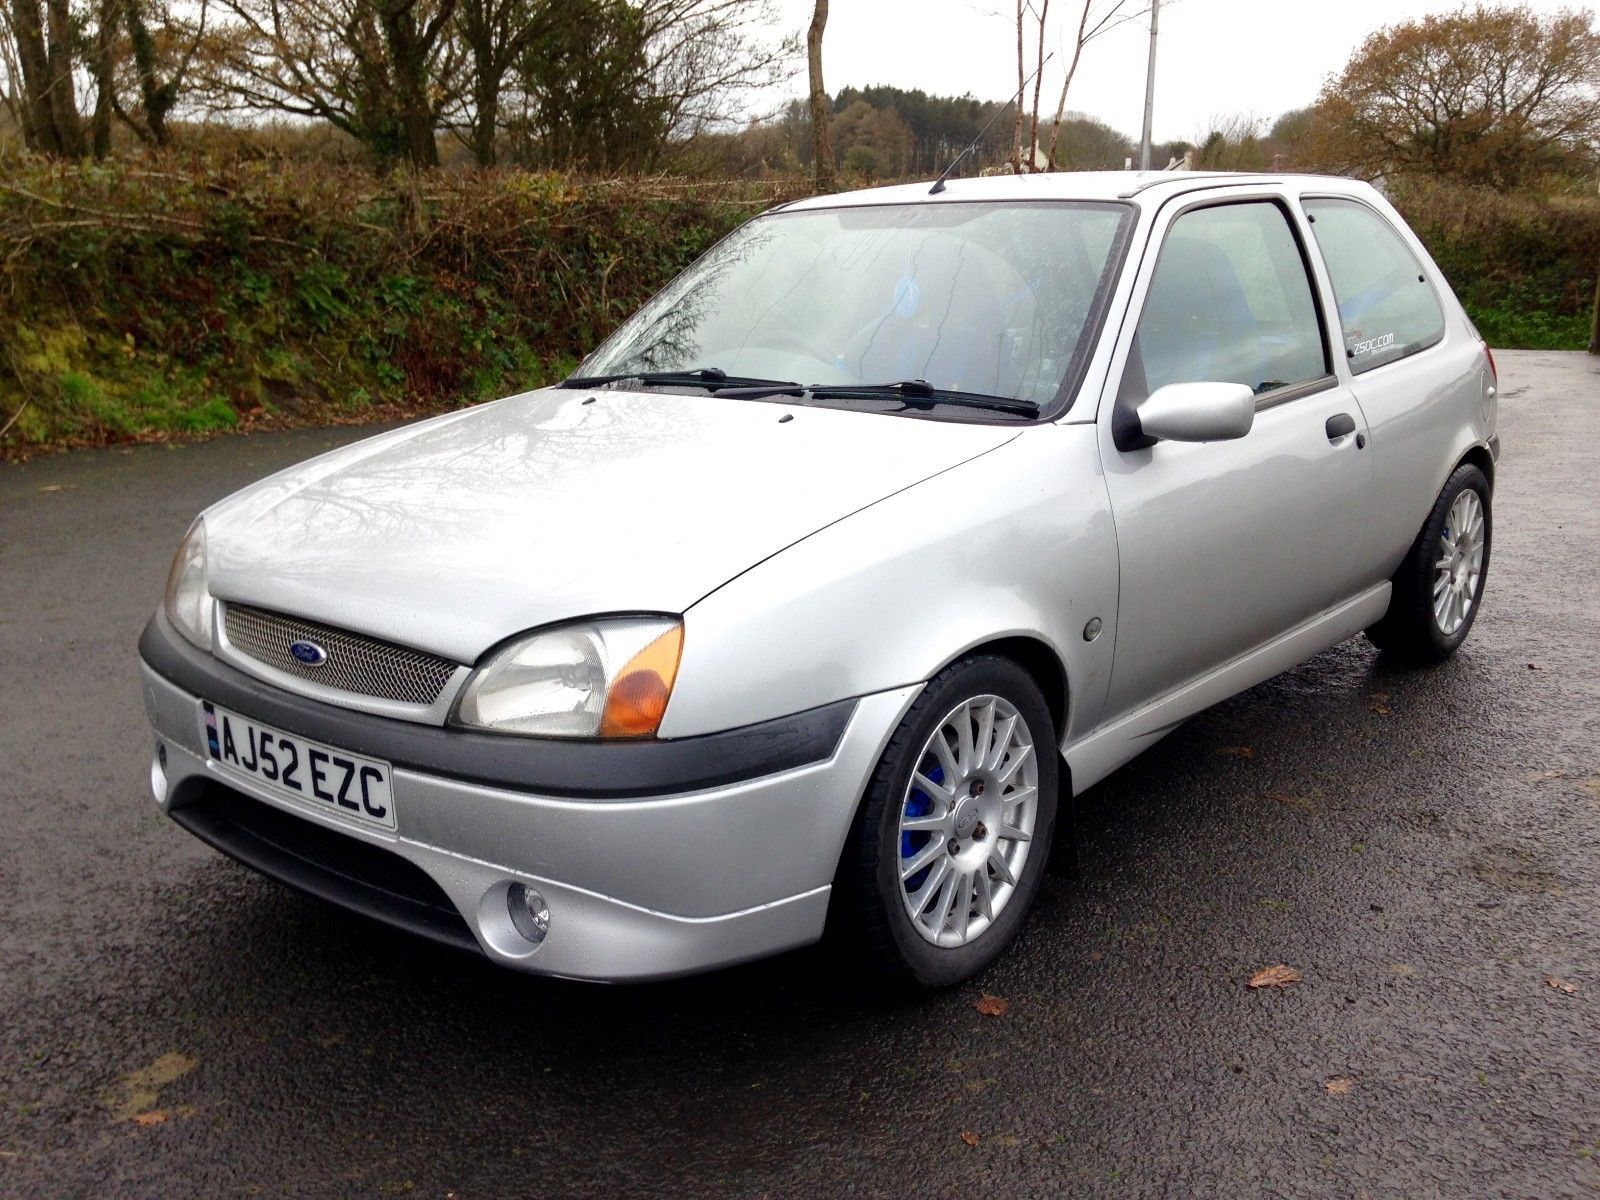 Check Out This Fast Ford Ford Fiesta Zetec S 1 6 Mk5 2002 Low